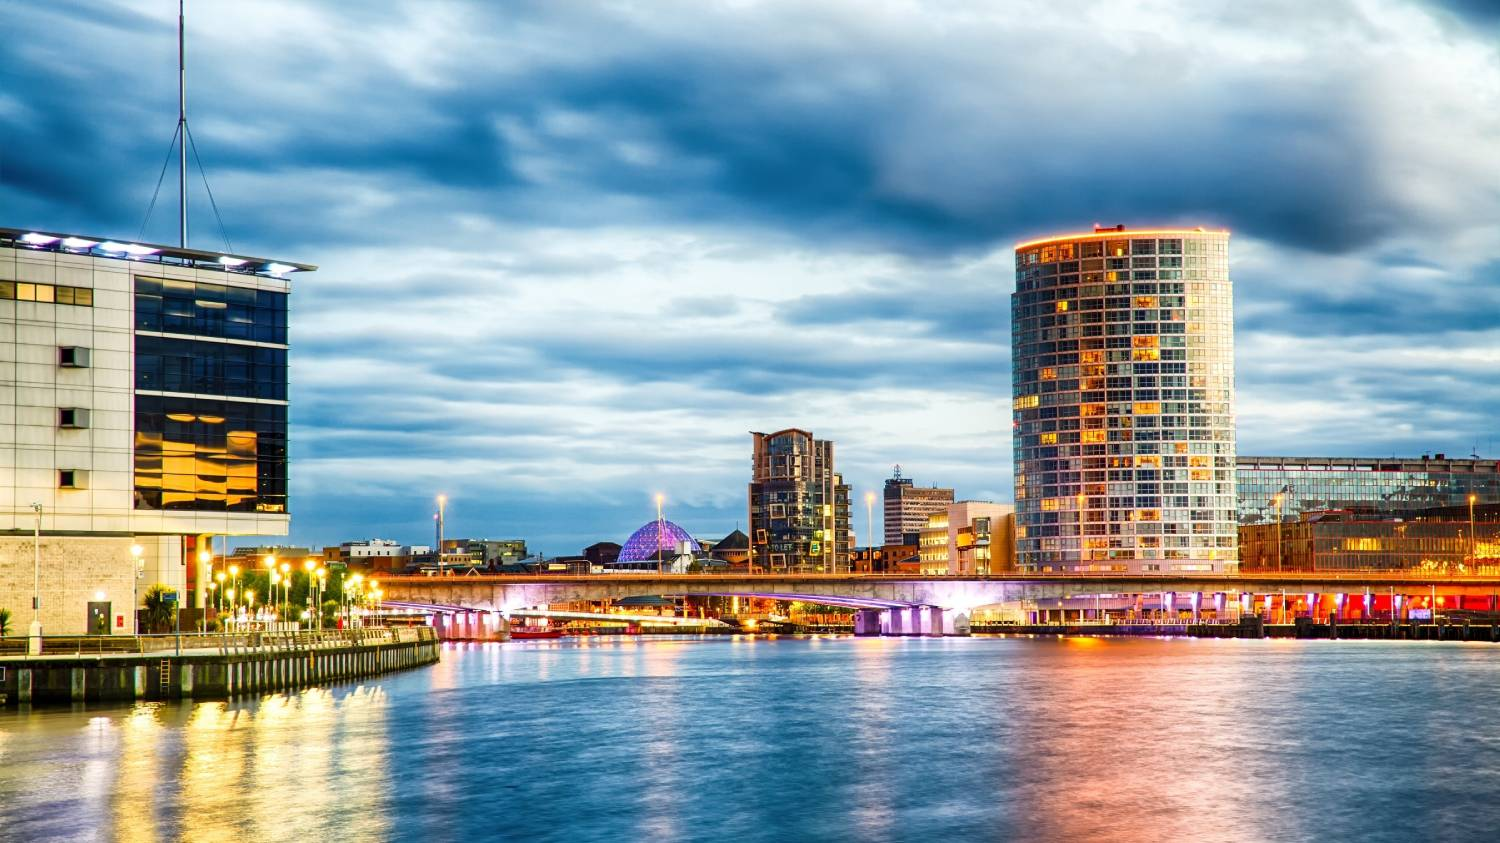 Belfast - The Best Places To Visit In Ireland